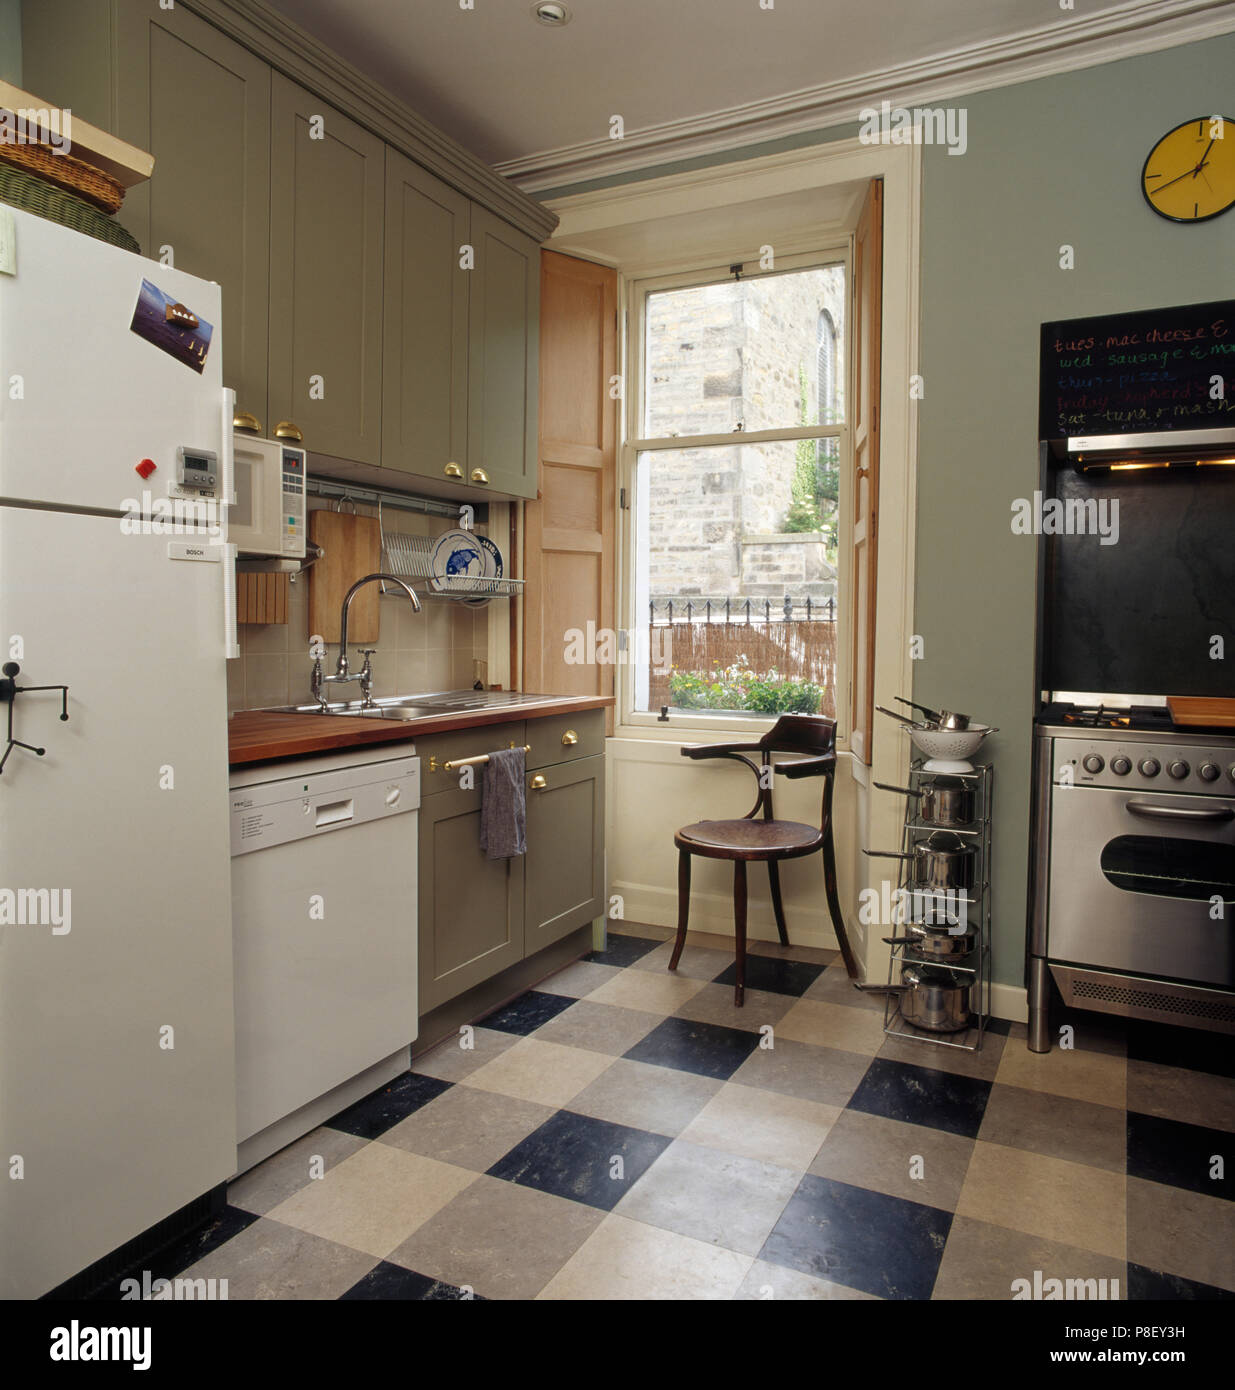 Vinyl chequerboard flooring in a townhouse kitchen with a large fridge freezer - Stock Image